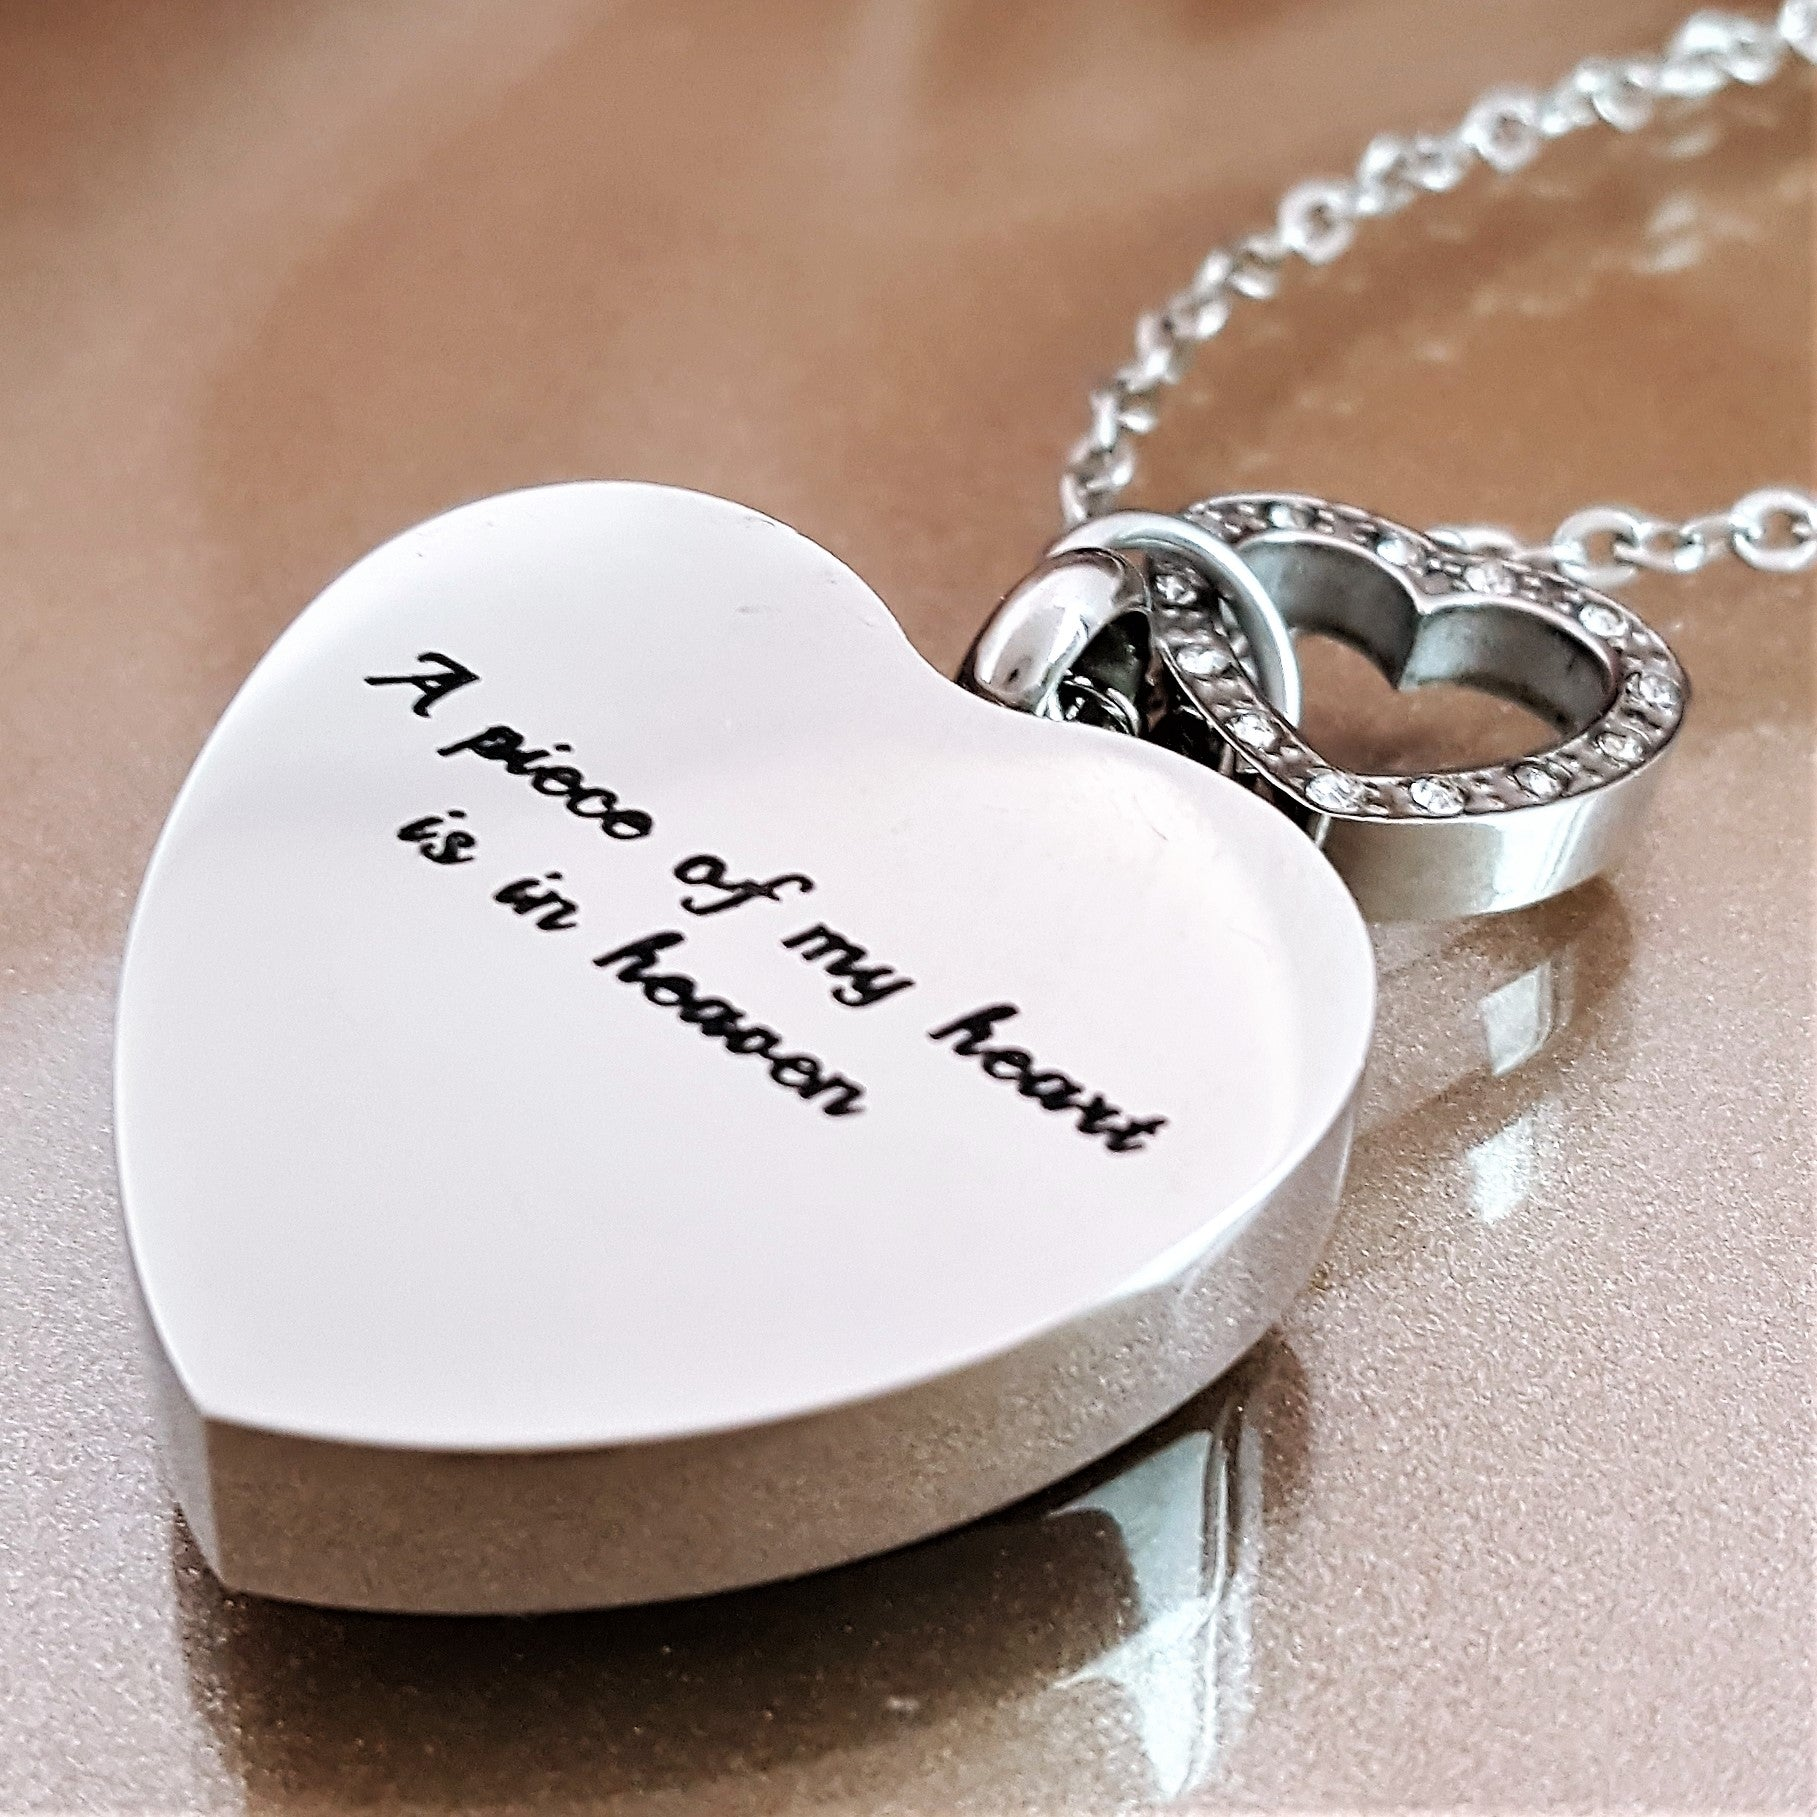 necklace infant sam forever and with steel side memorial stainless in floating letter my memory products birthstone locket baby options loss charm heart personalized